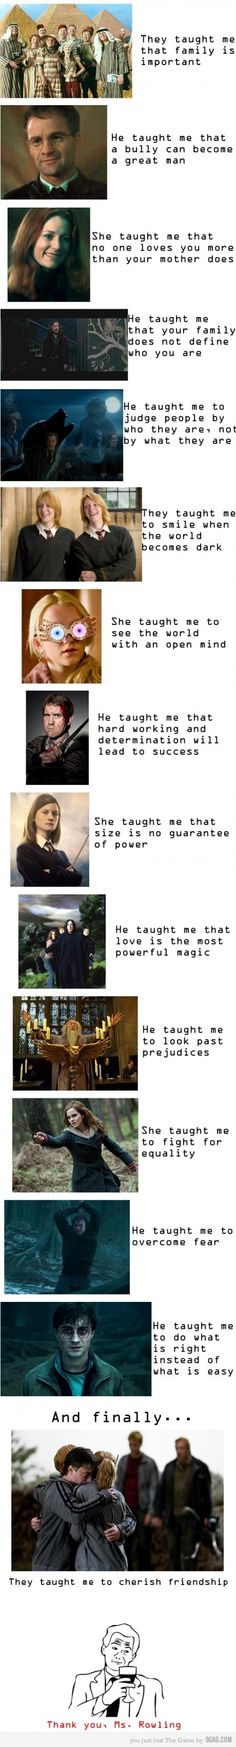 awww...i just love me some harry potter!